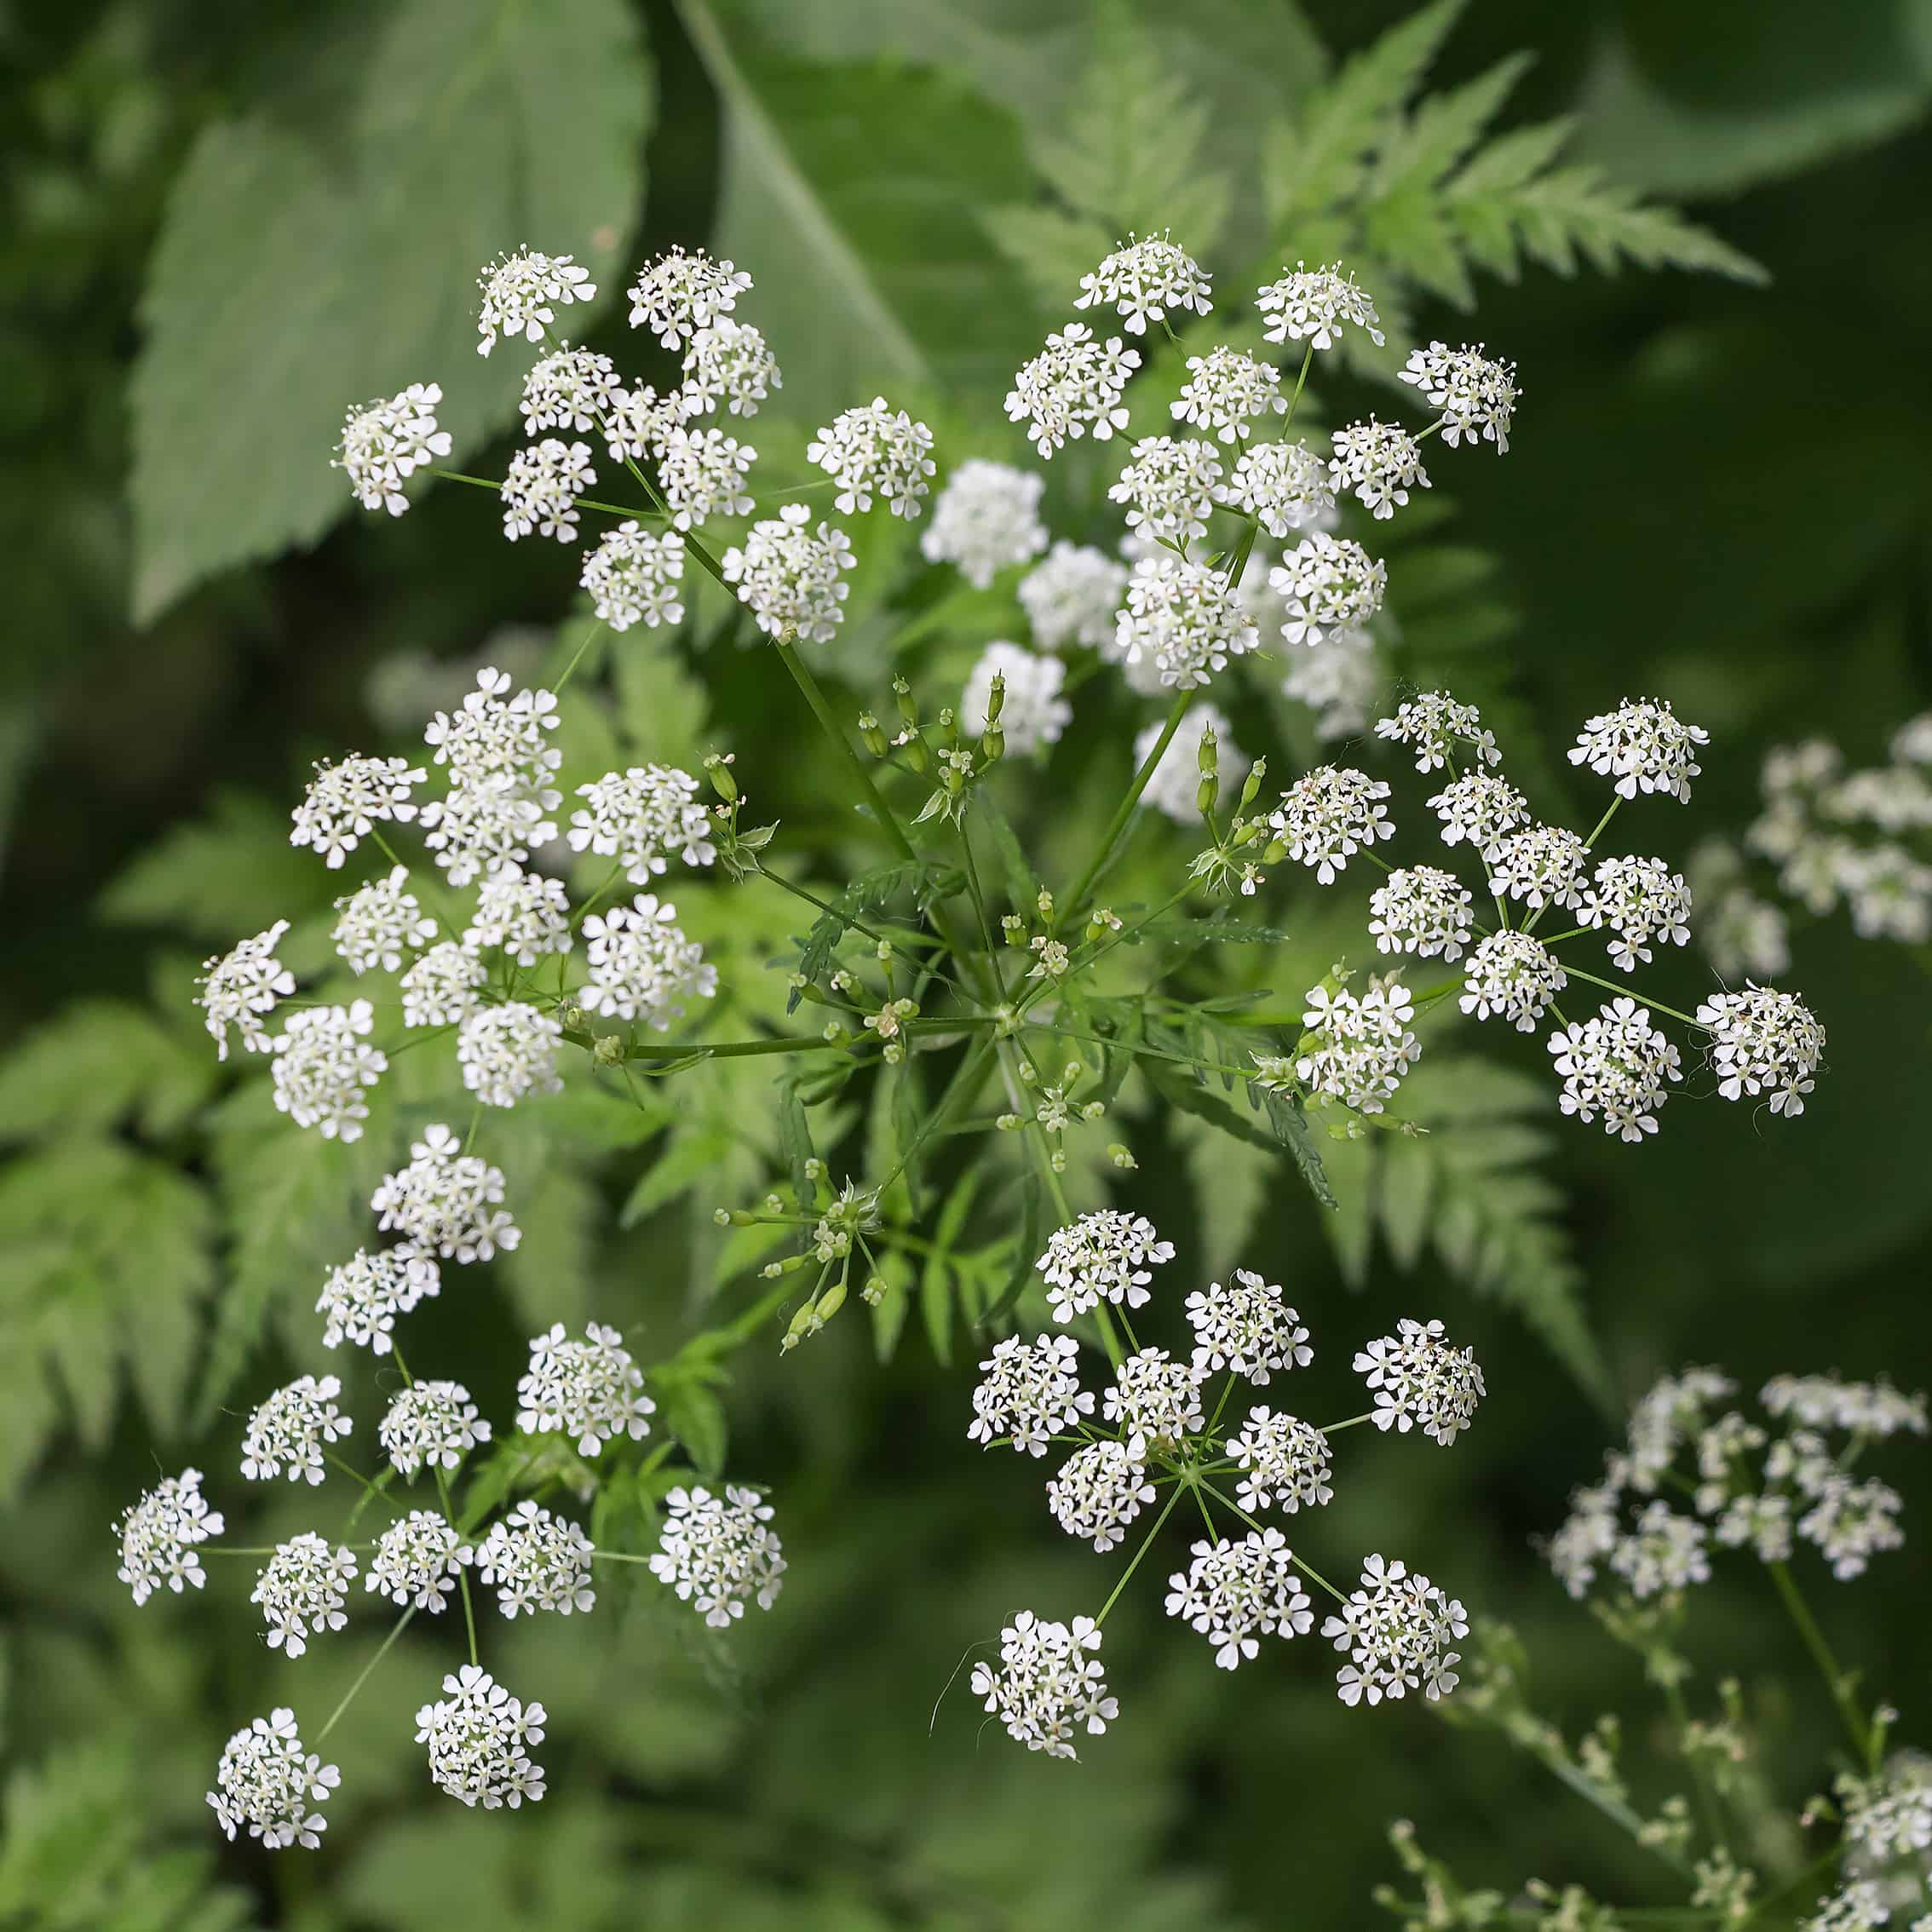 Inflorescence of a herb of Hemlock or Poison Hemlock (Conium maculatum) close up